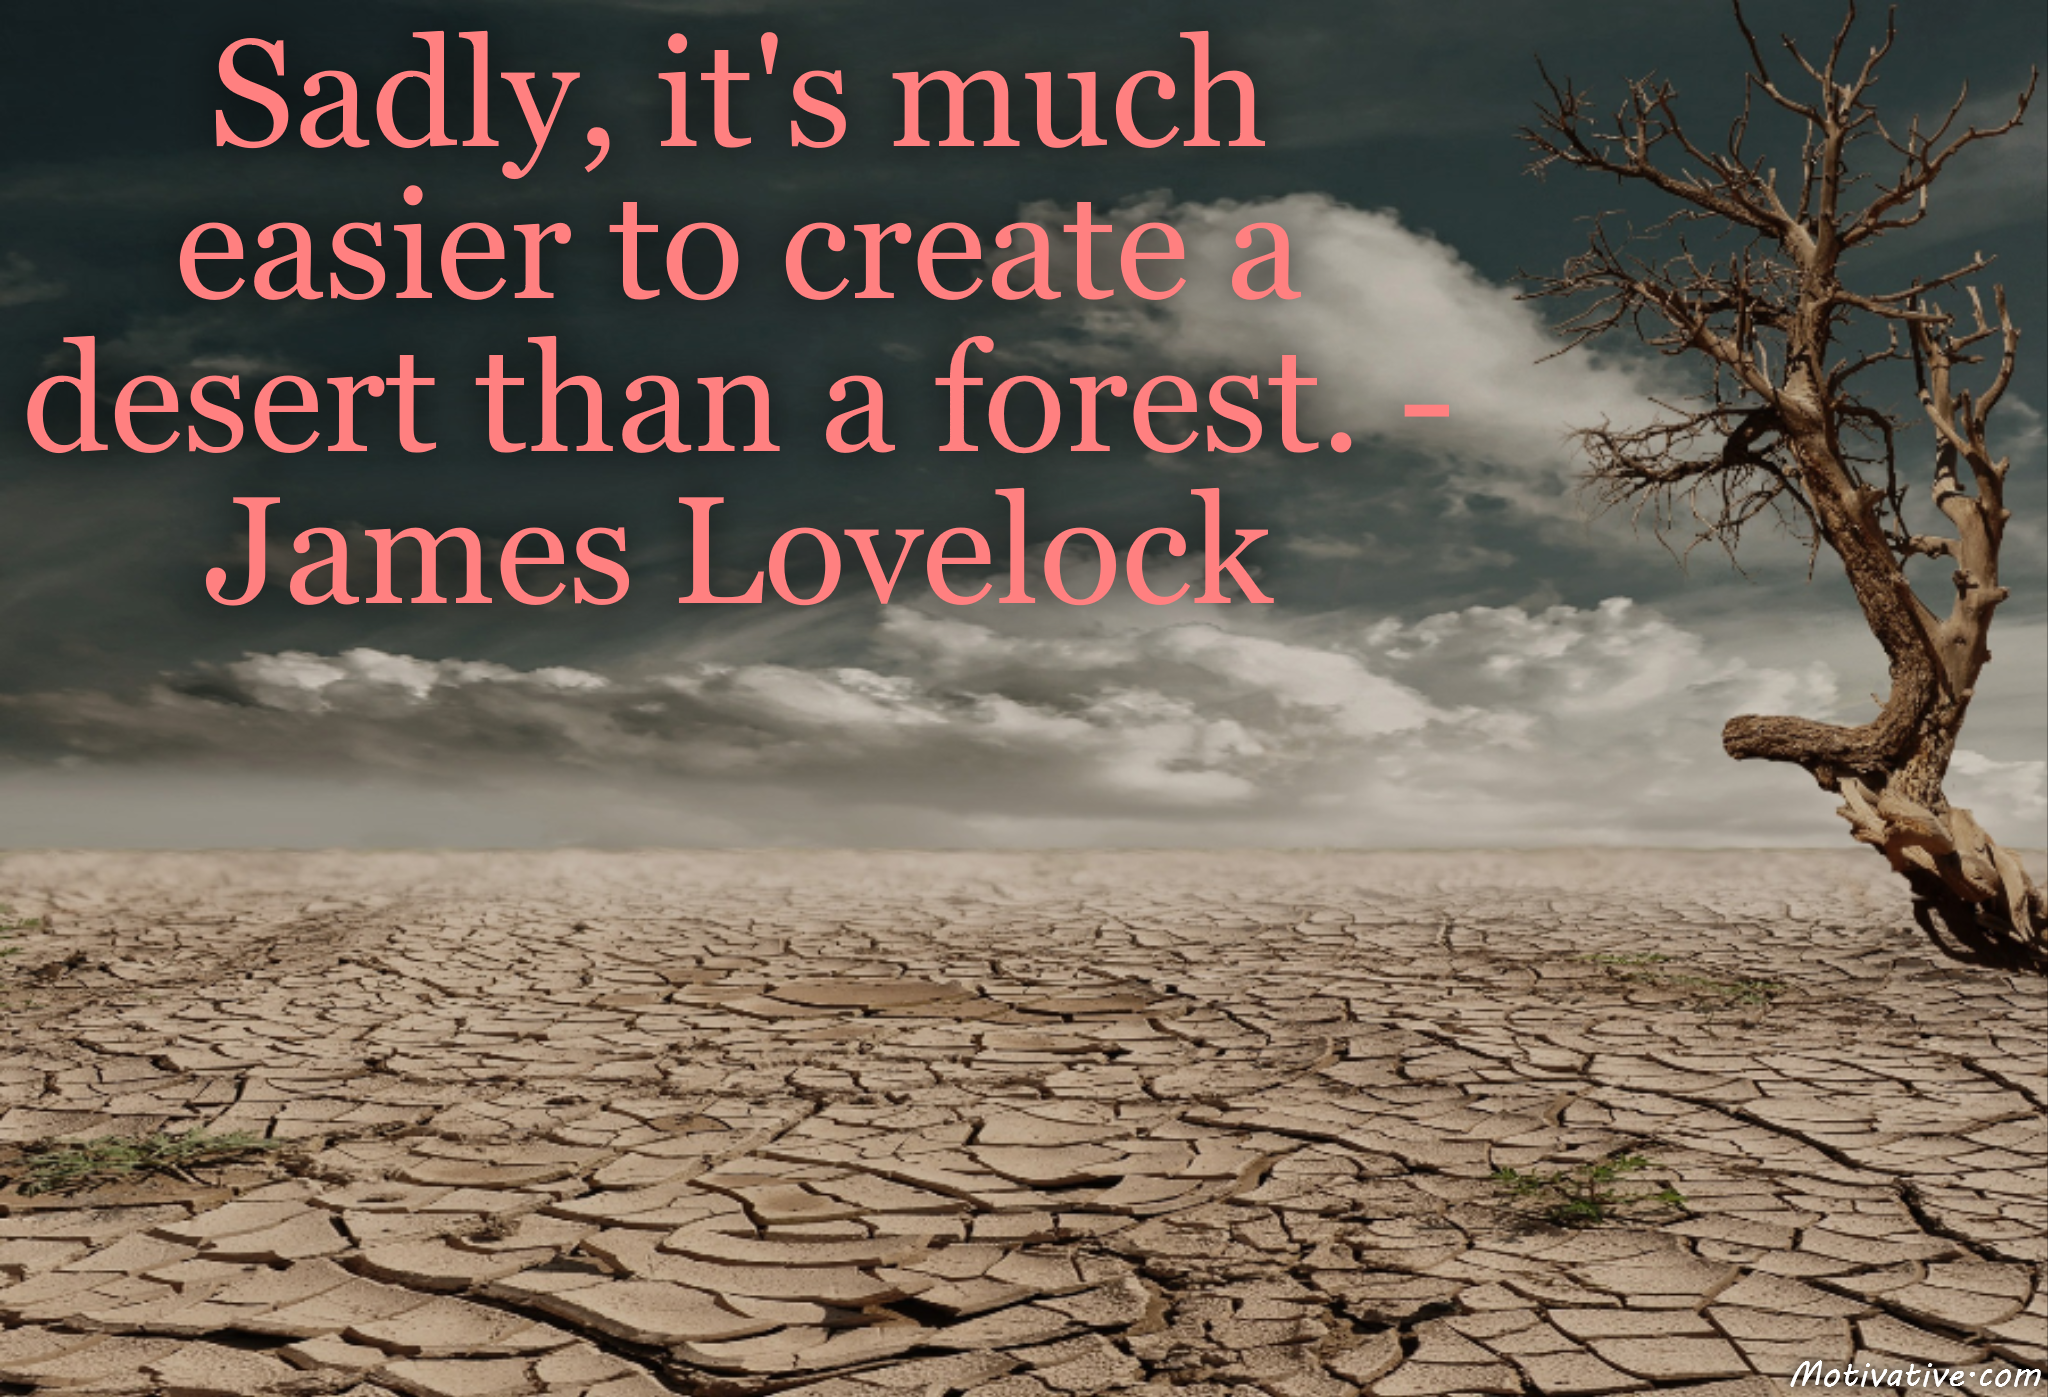 Sadly, it's much easier to create a desert than a forest. – James Lovelock